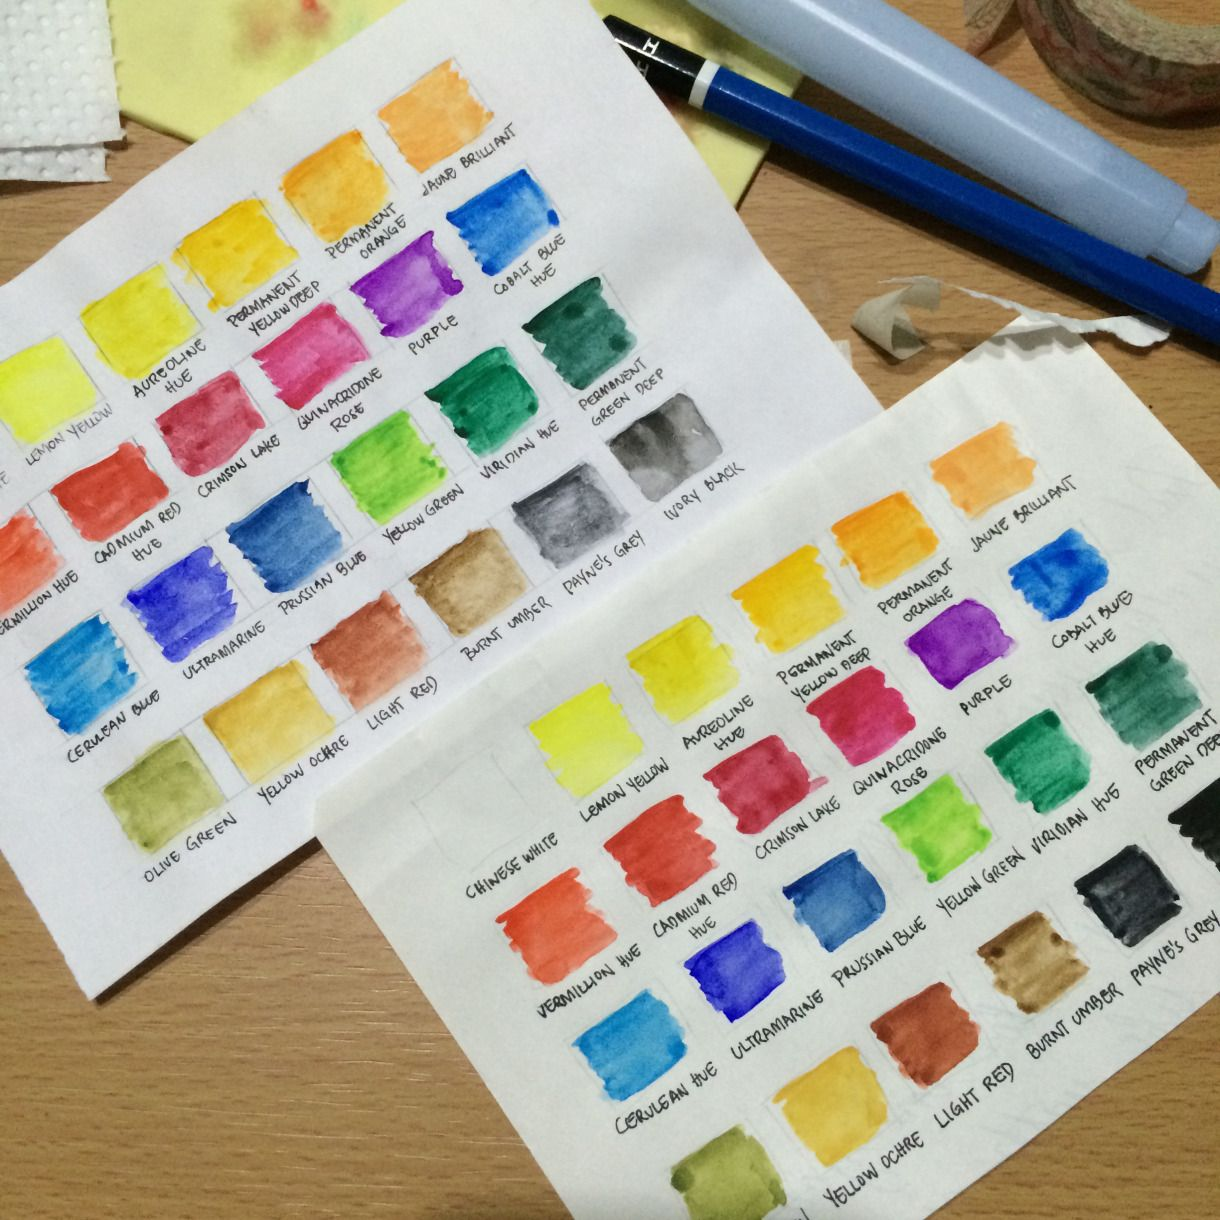 A Review Of The Sakura Koi Watercolor Field Set